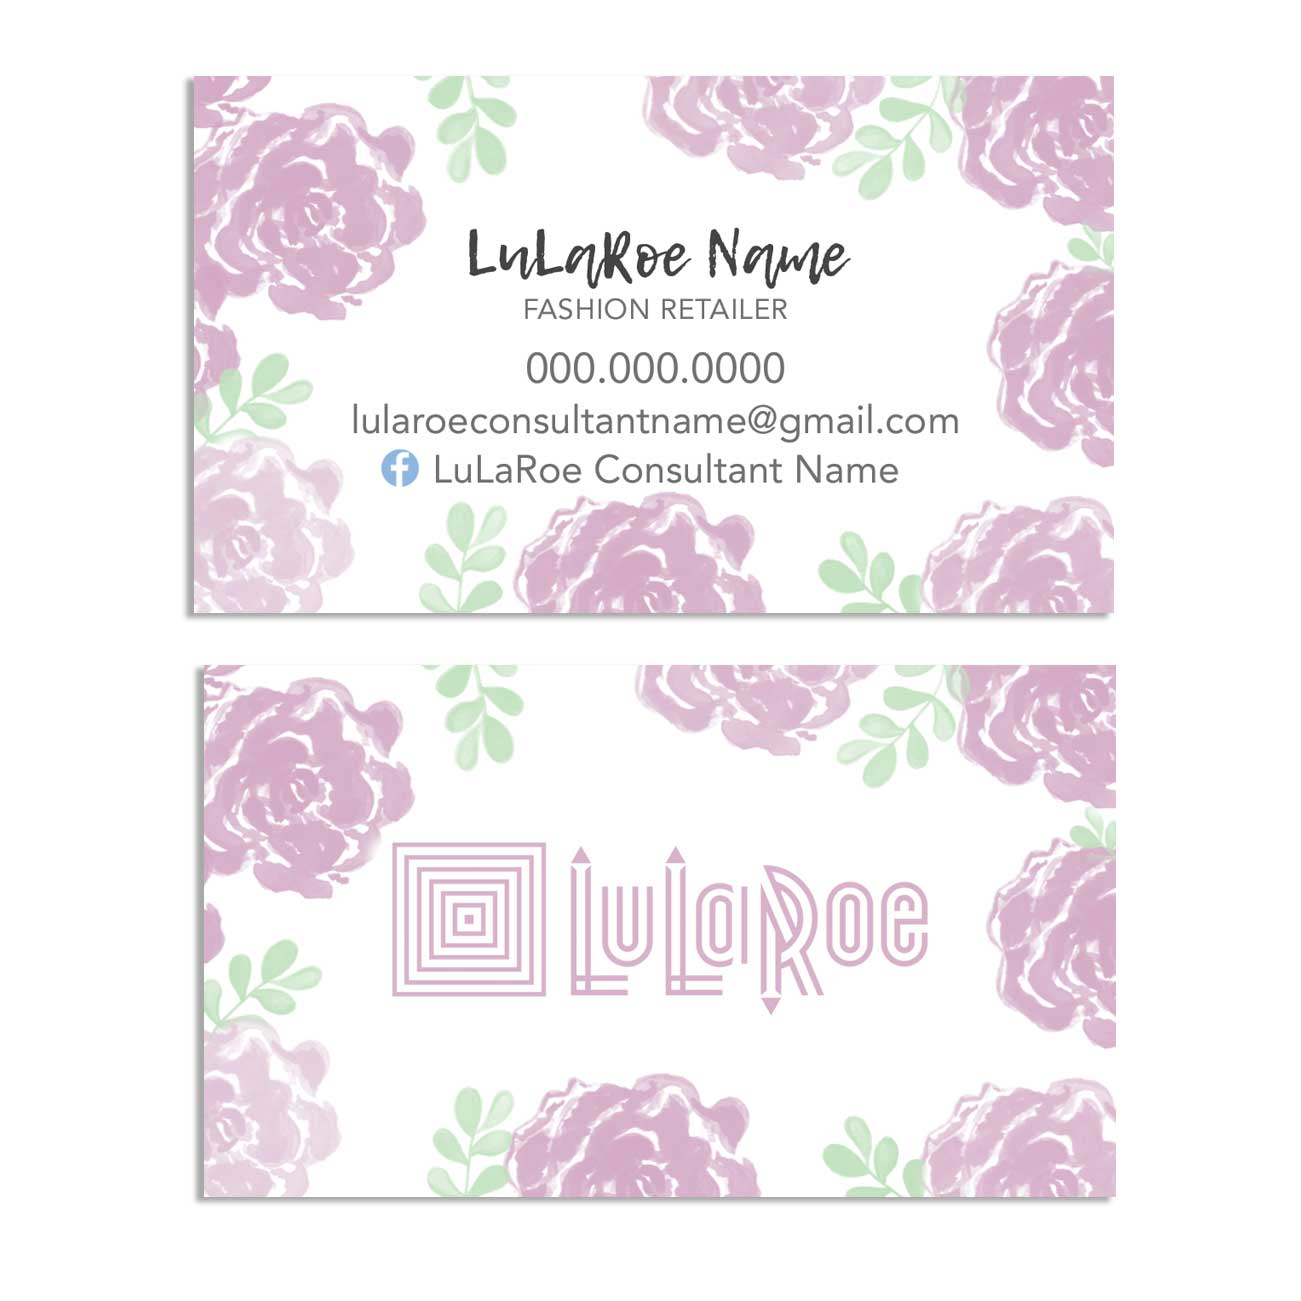 LuLaRoe Business Card – Purple Watercolor Flowers horizontal